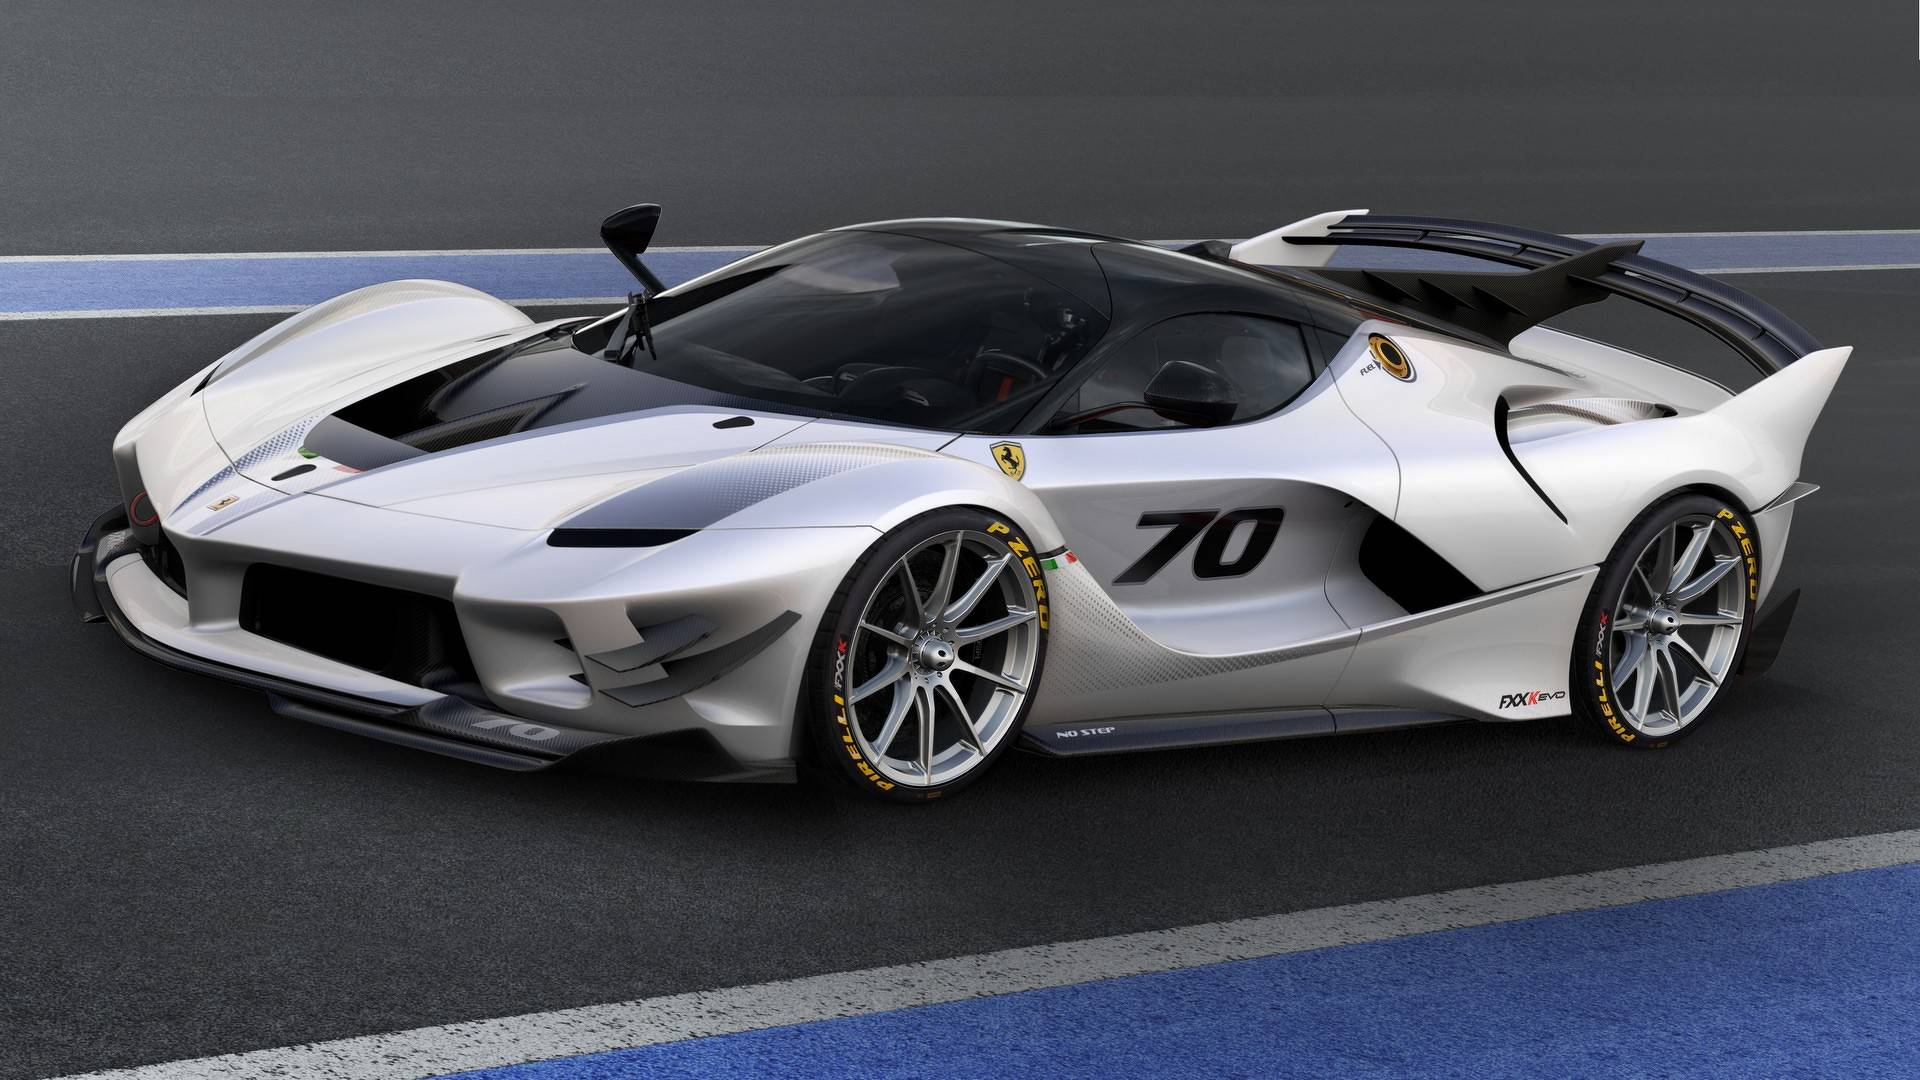 Ferrari FXX K Evo Debuts With More Aero, Less Weight